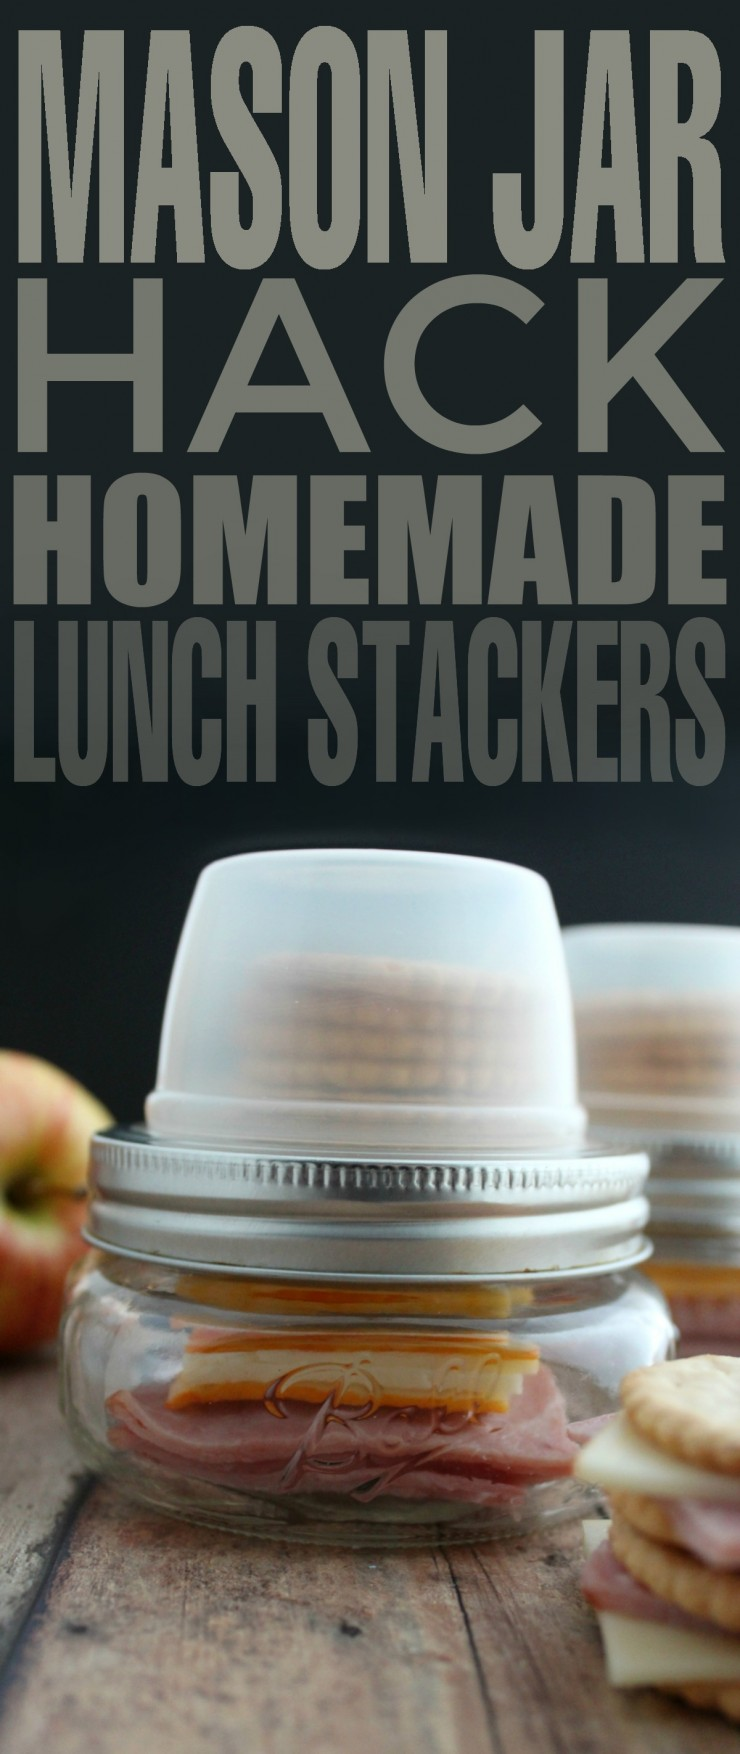 Allow kids to enjoy lunch stackables that are healthier + much more affordable (include nitrate free meats, gluten free crackers, etc.). Also, a great way for those with allergies to enjoy lunch stackables – gluten free products, dairy free sliced cheese, etc.